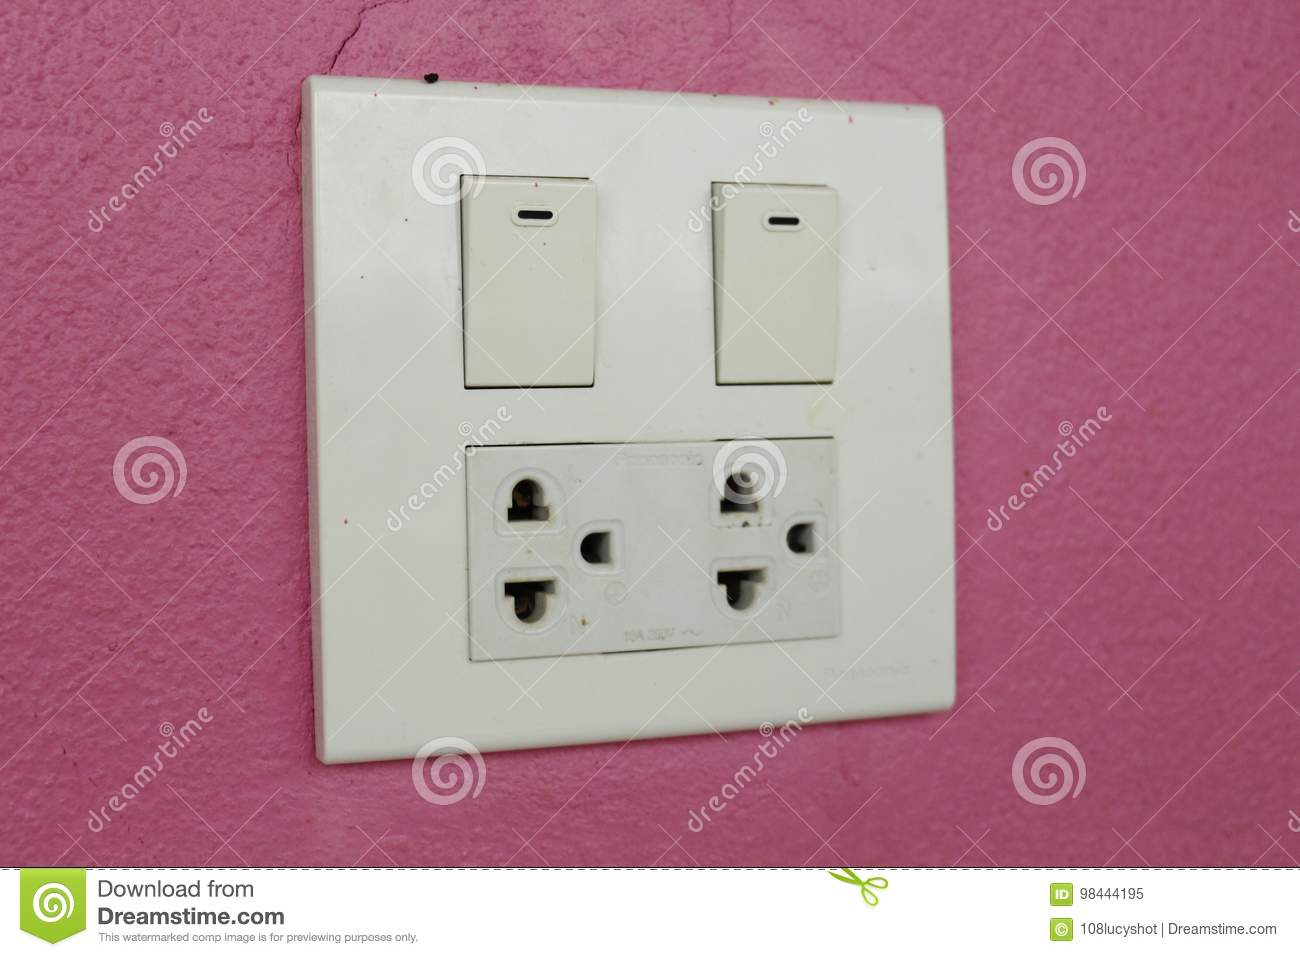 Electrical Plug And Pink Background Stock Image - Image of european ...